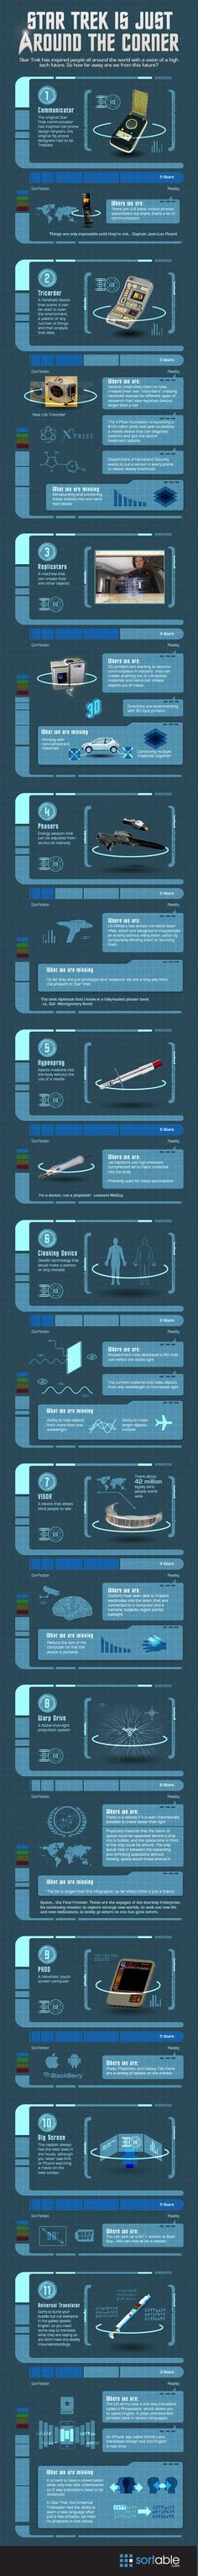 Star Trek Science Fiction Gadgets and their modern day counterparts.